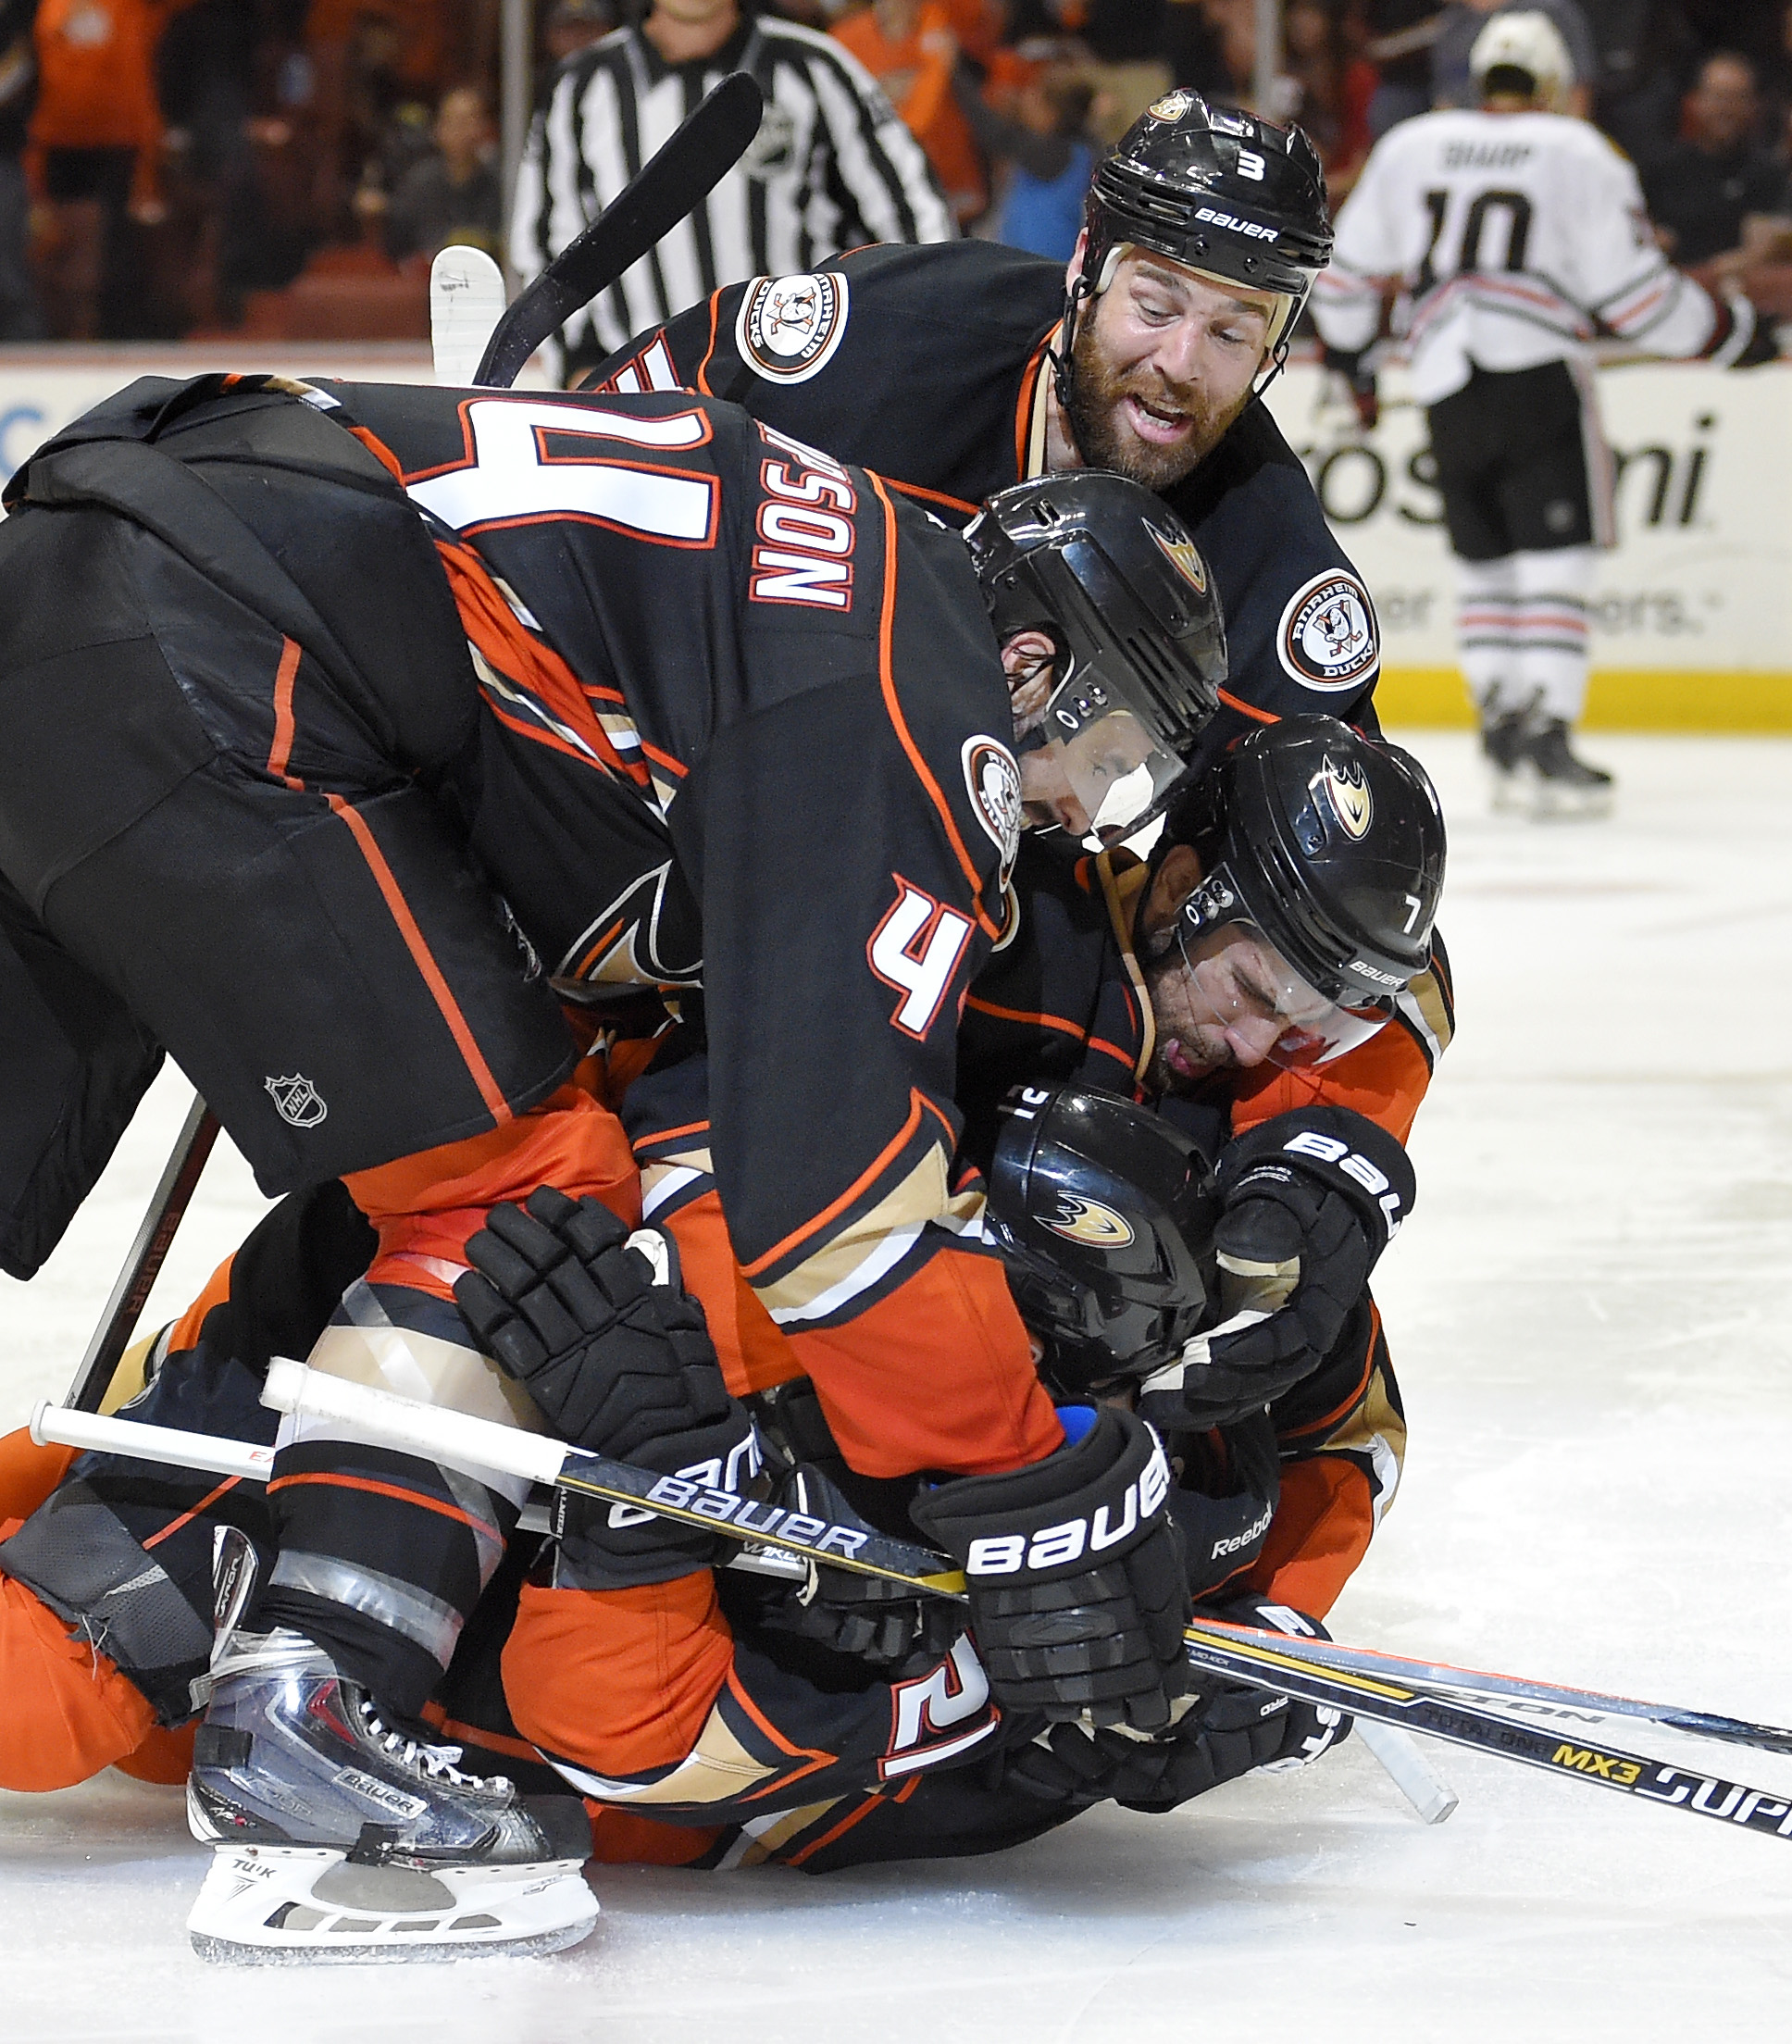 Teammates celebrate with Anaheim Ducks right wing Kyle Palmieri, bottom, after his goal during the second period in Game 1 of a Western Conference finals hockey series against the Chicago Blackhawks, Sunday, May 17, 2015, in Anaheim, Calif. (AP Photo/Mark